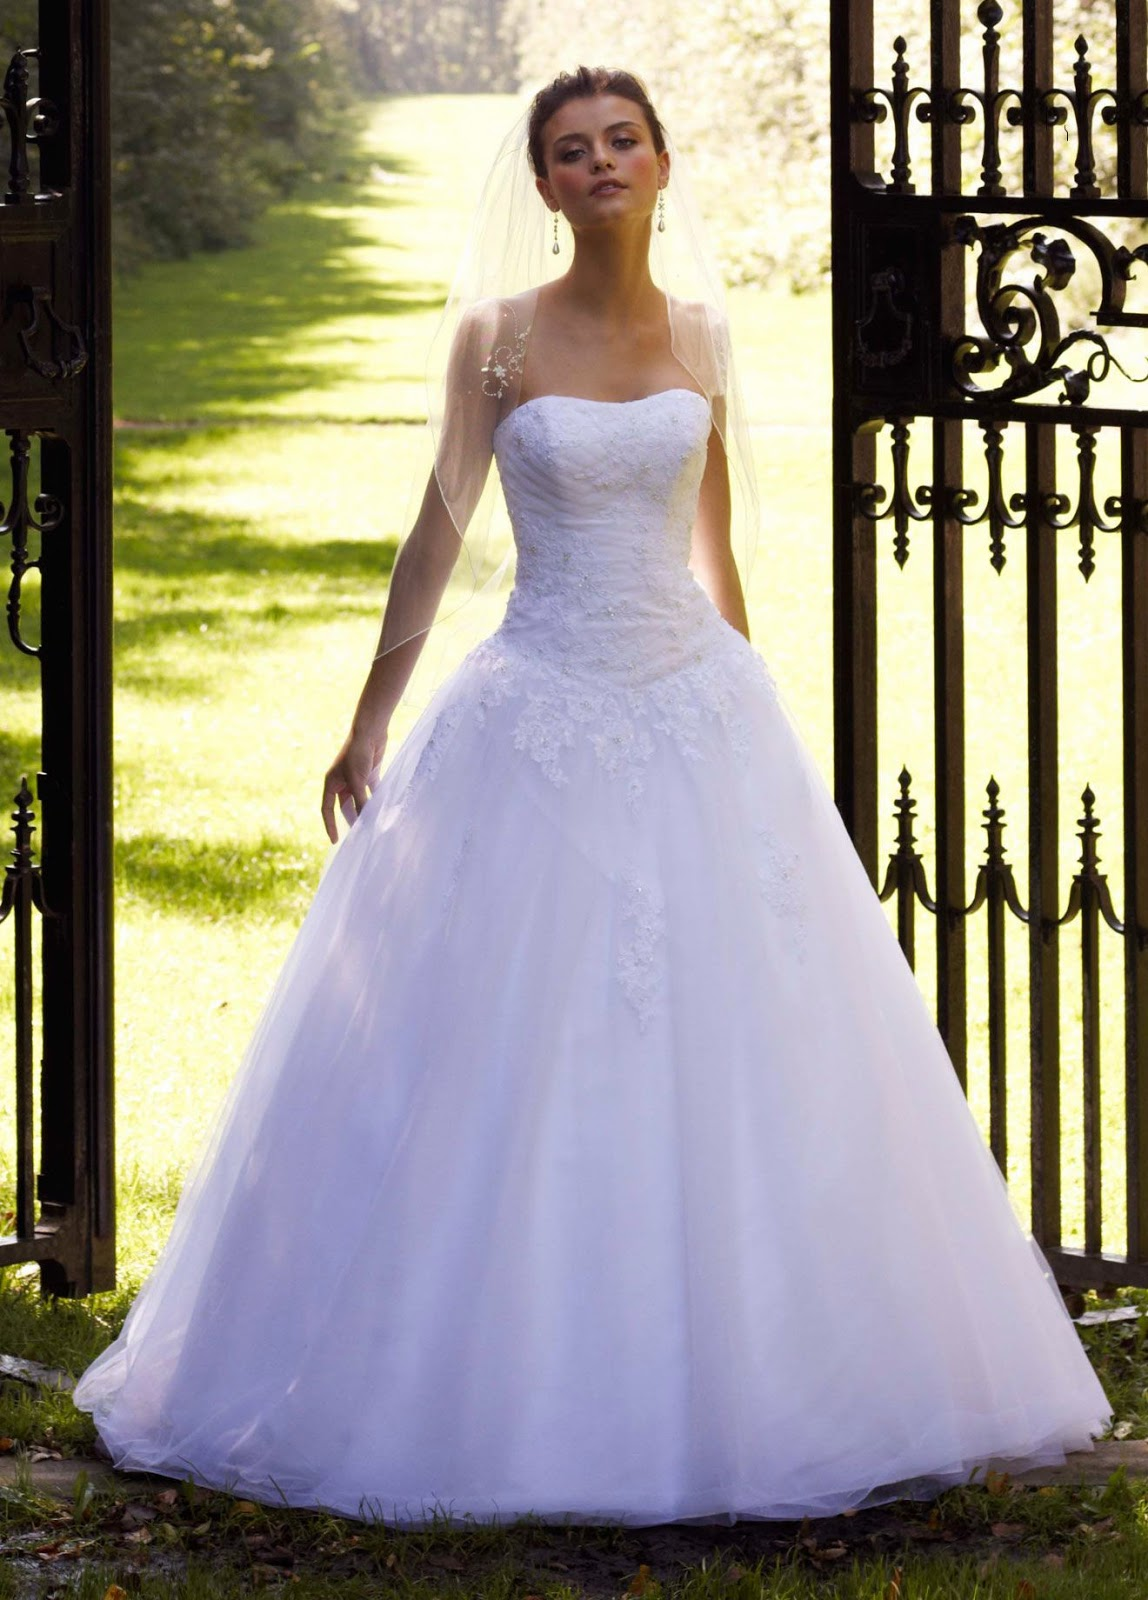 davids bridal wedding dress 2012 collectionstrapless tulle ball gown